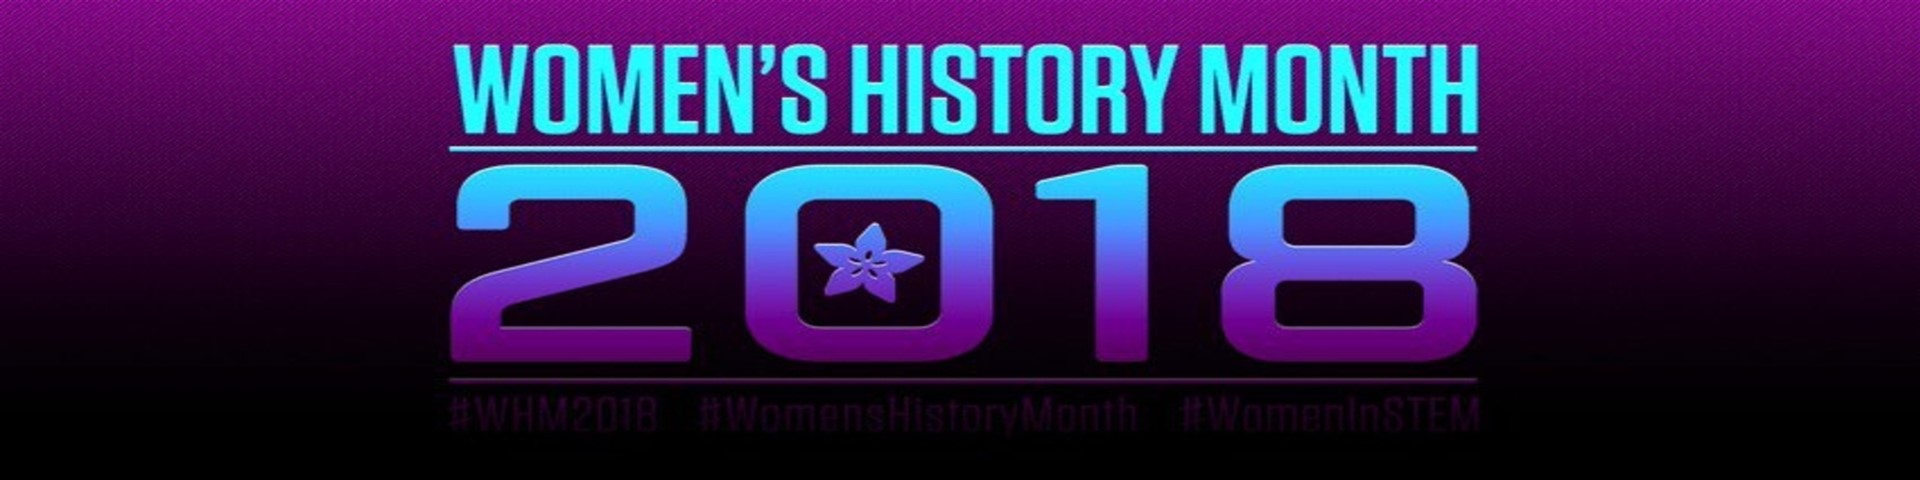 Women's History Month is an annual declared month that highlights the contributions of women to events in history and contemporary society.